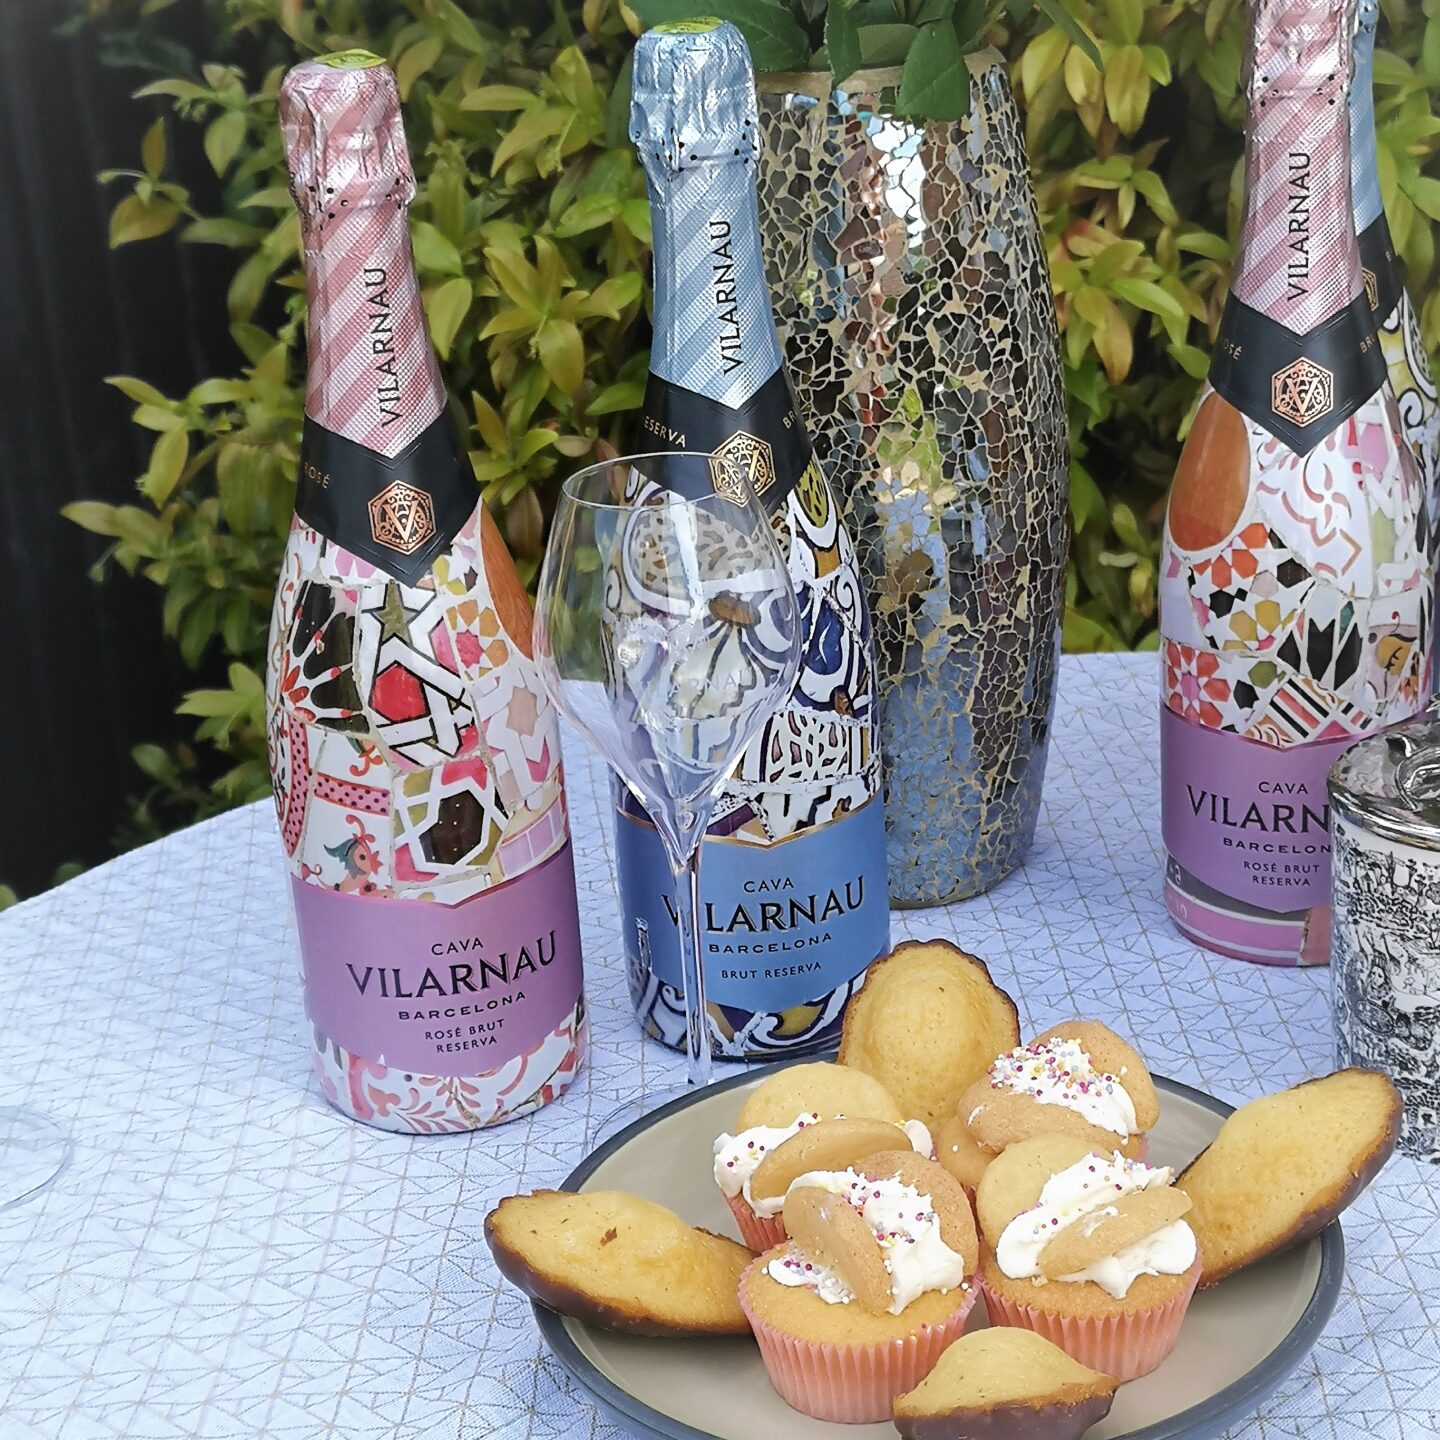 Vilarnau Premium Cava, #MakeItSparkle, Premium Cava, Vilarnau, Vilarnau Cava Barcelona, Brut Reserva Rosé, Sparkling Wine, Cava, Blog Anniversary Giveaway, Win , the Frenchie Mummy, Made in Barcelona